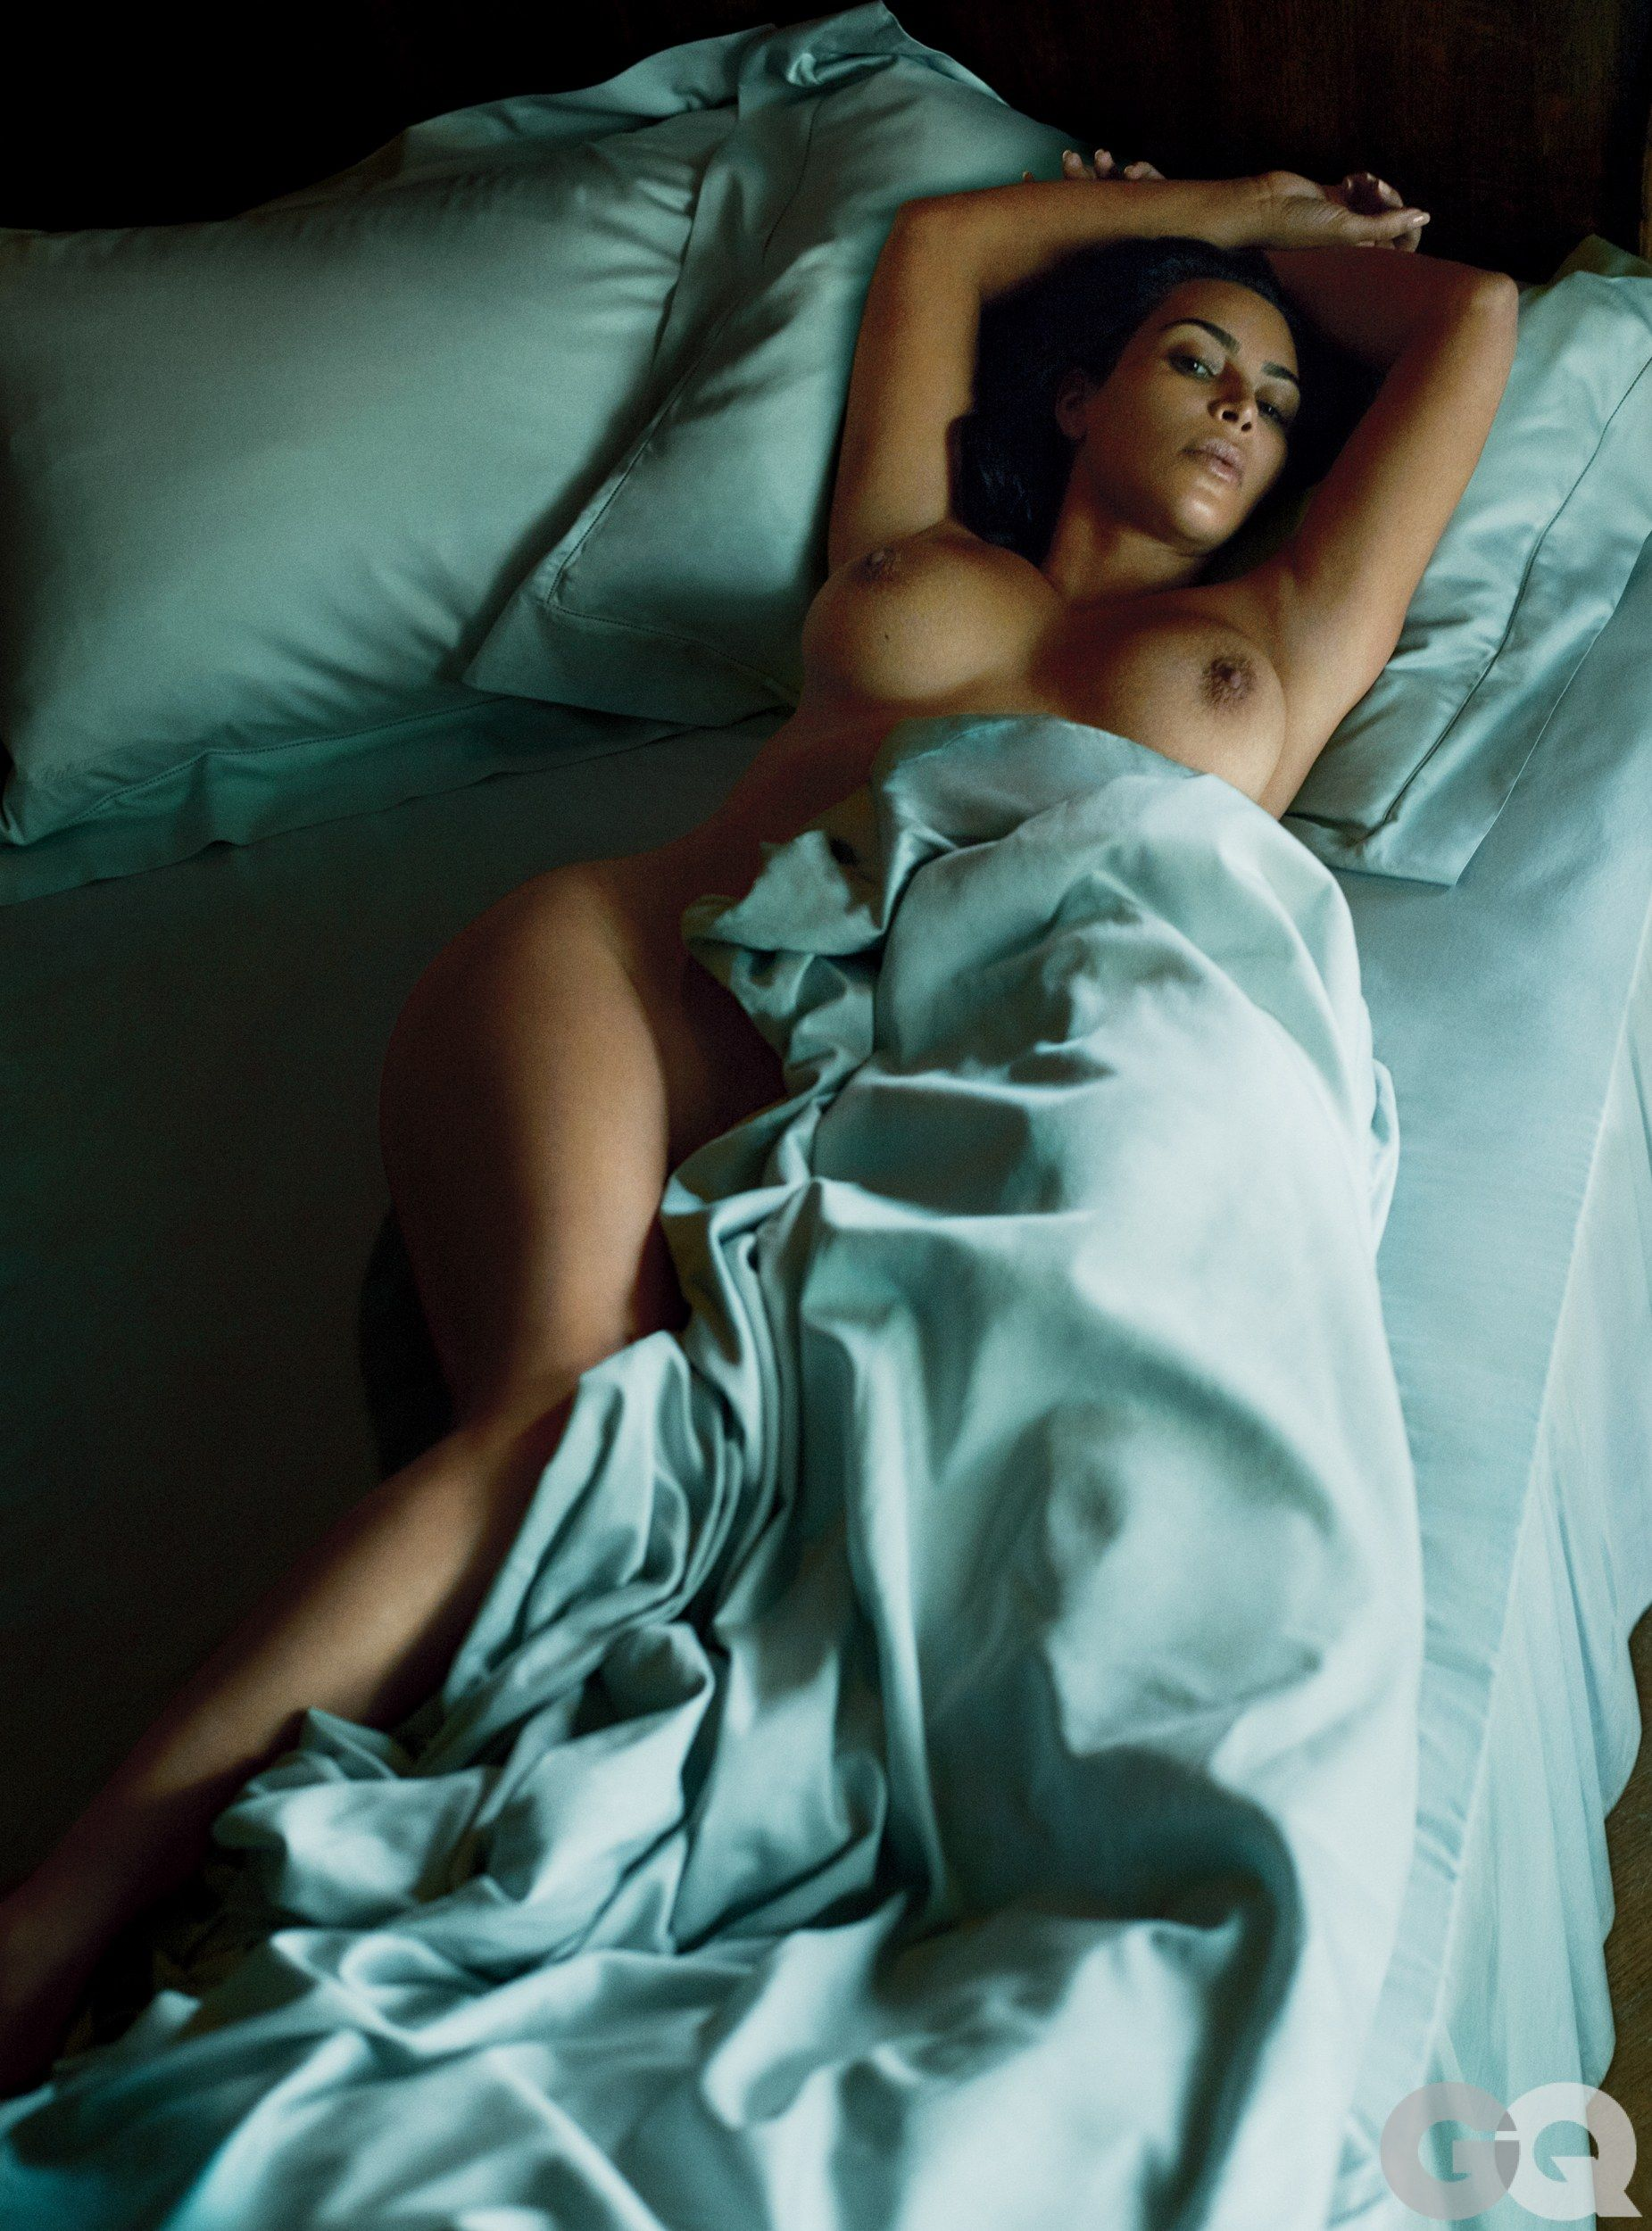 naked-pictures-of-kim-kardashian-mom-increases-during-the